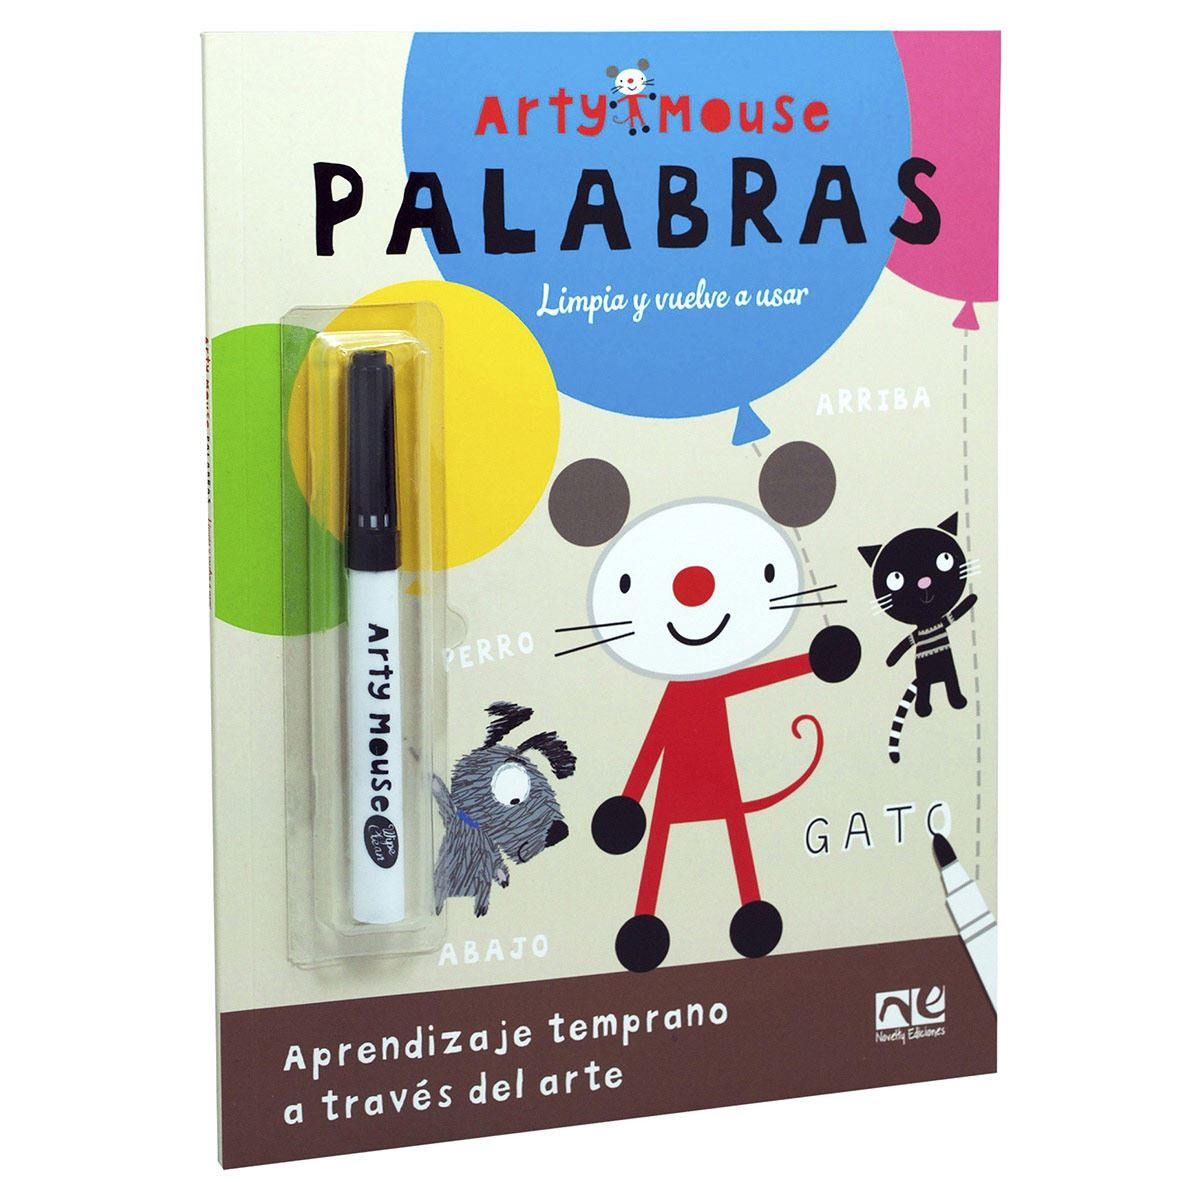 Palabras Arty Mouse